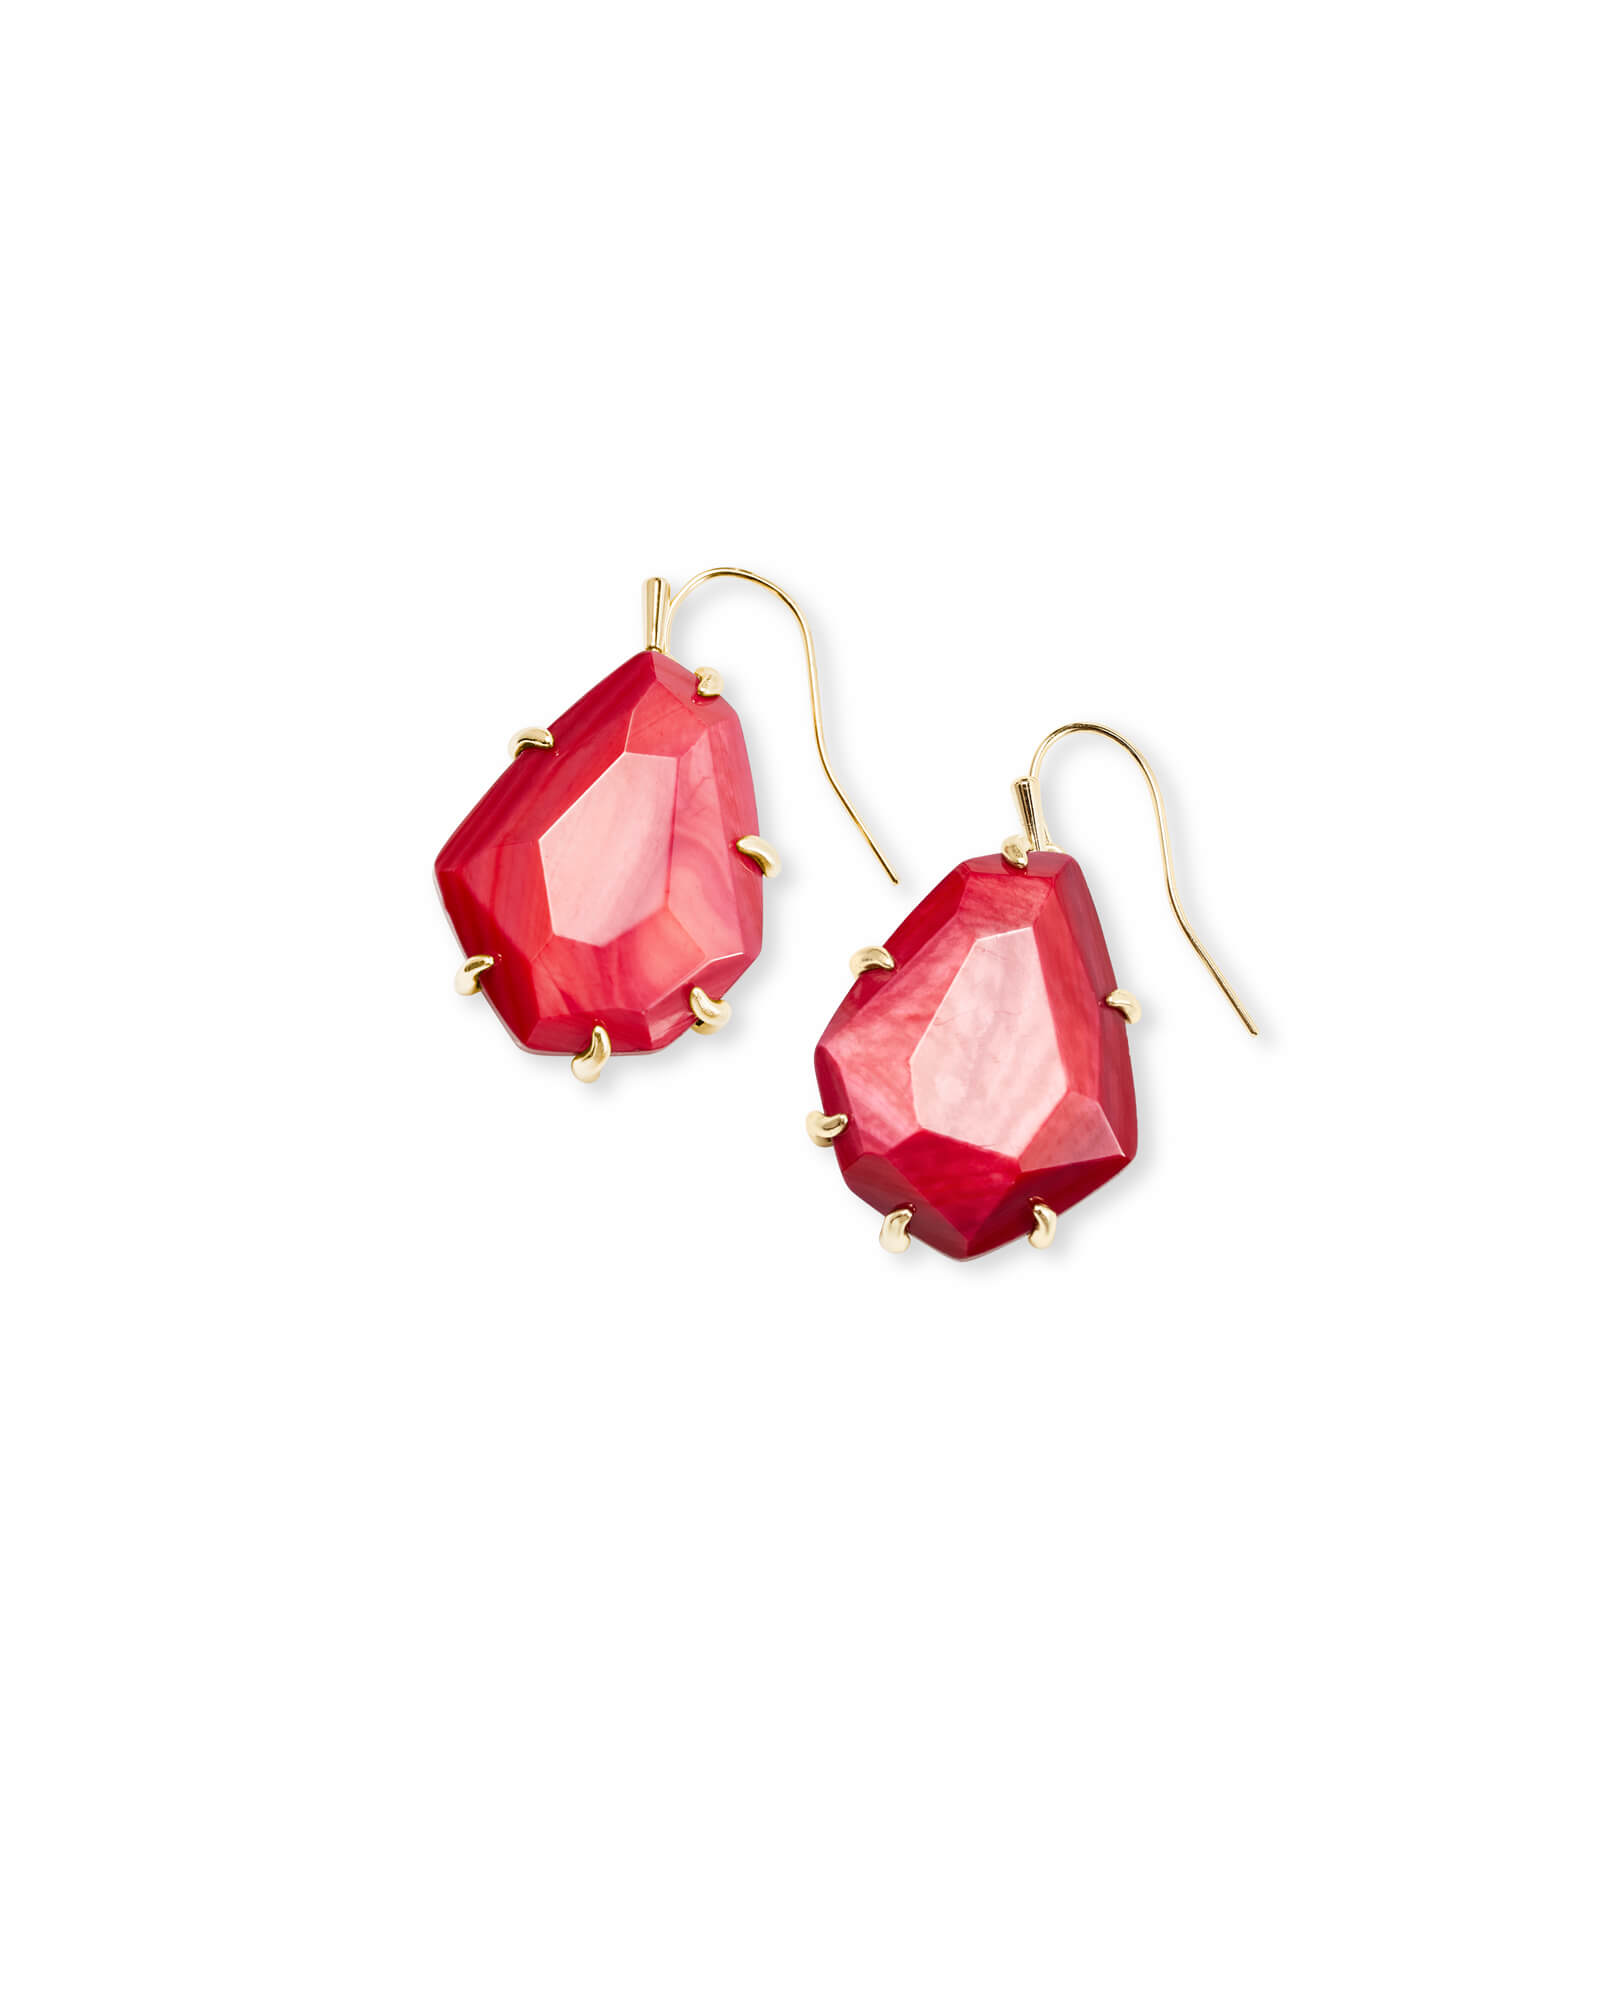 Rosenell Gold Drop Earrings In Red Mother of Pearl